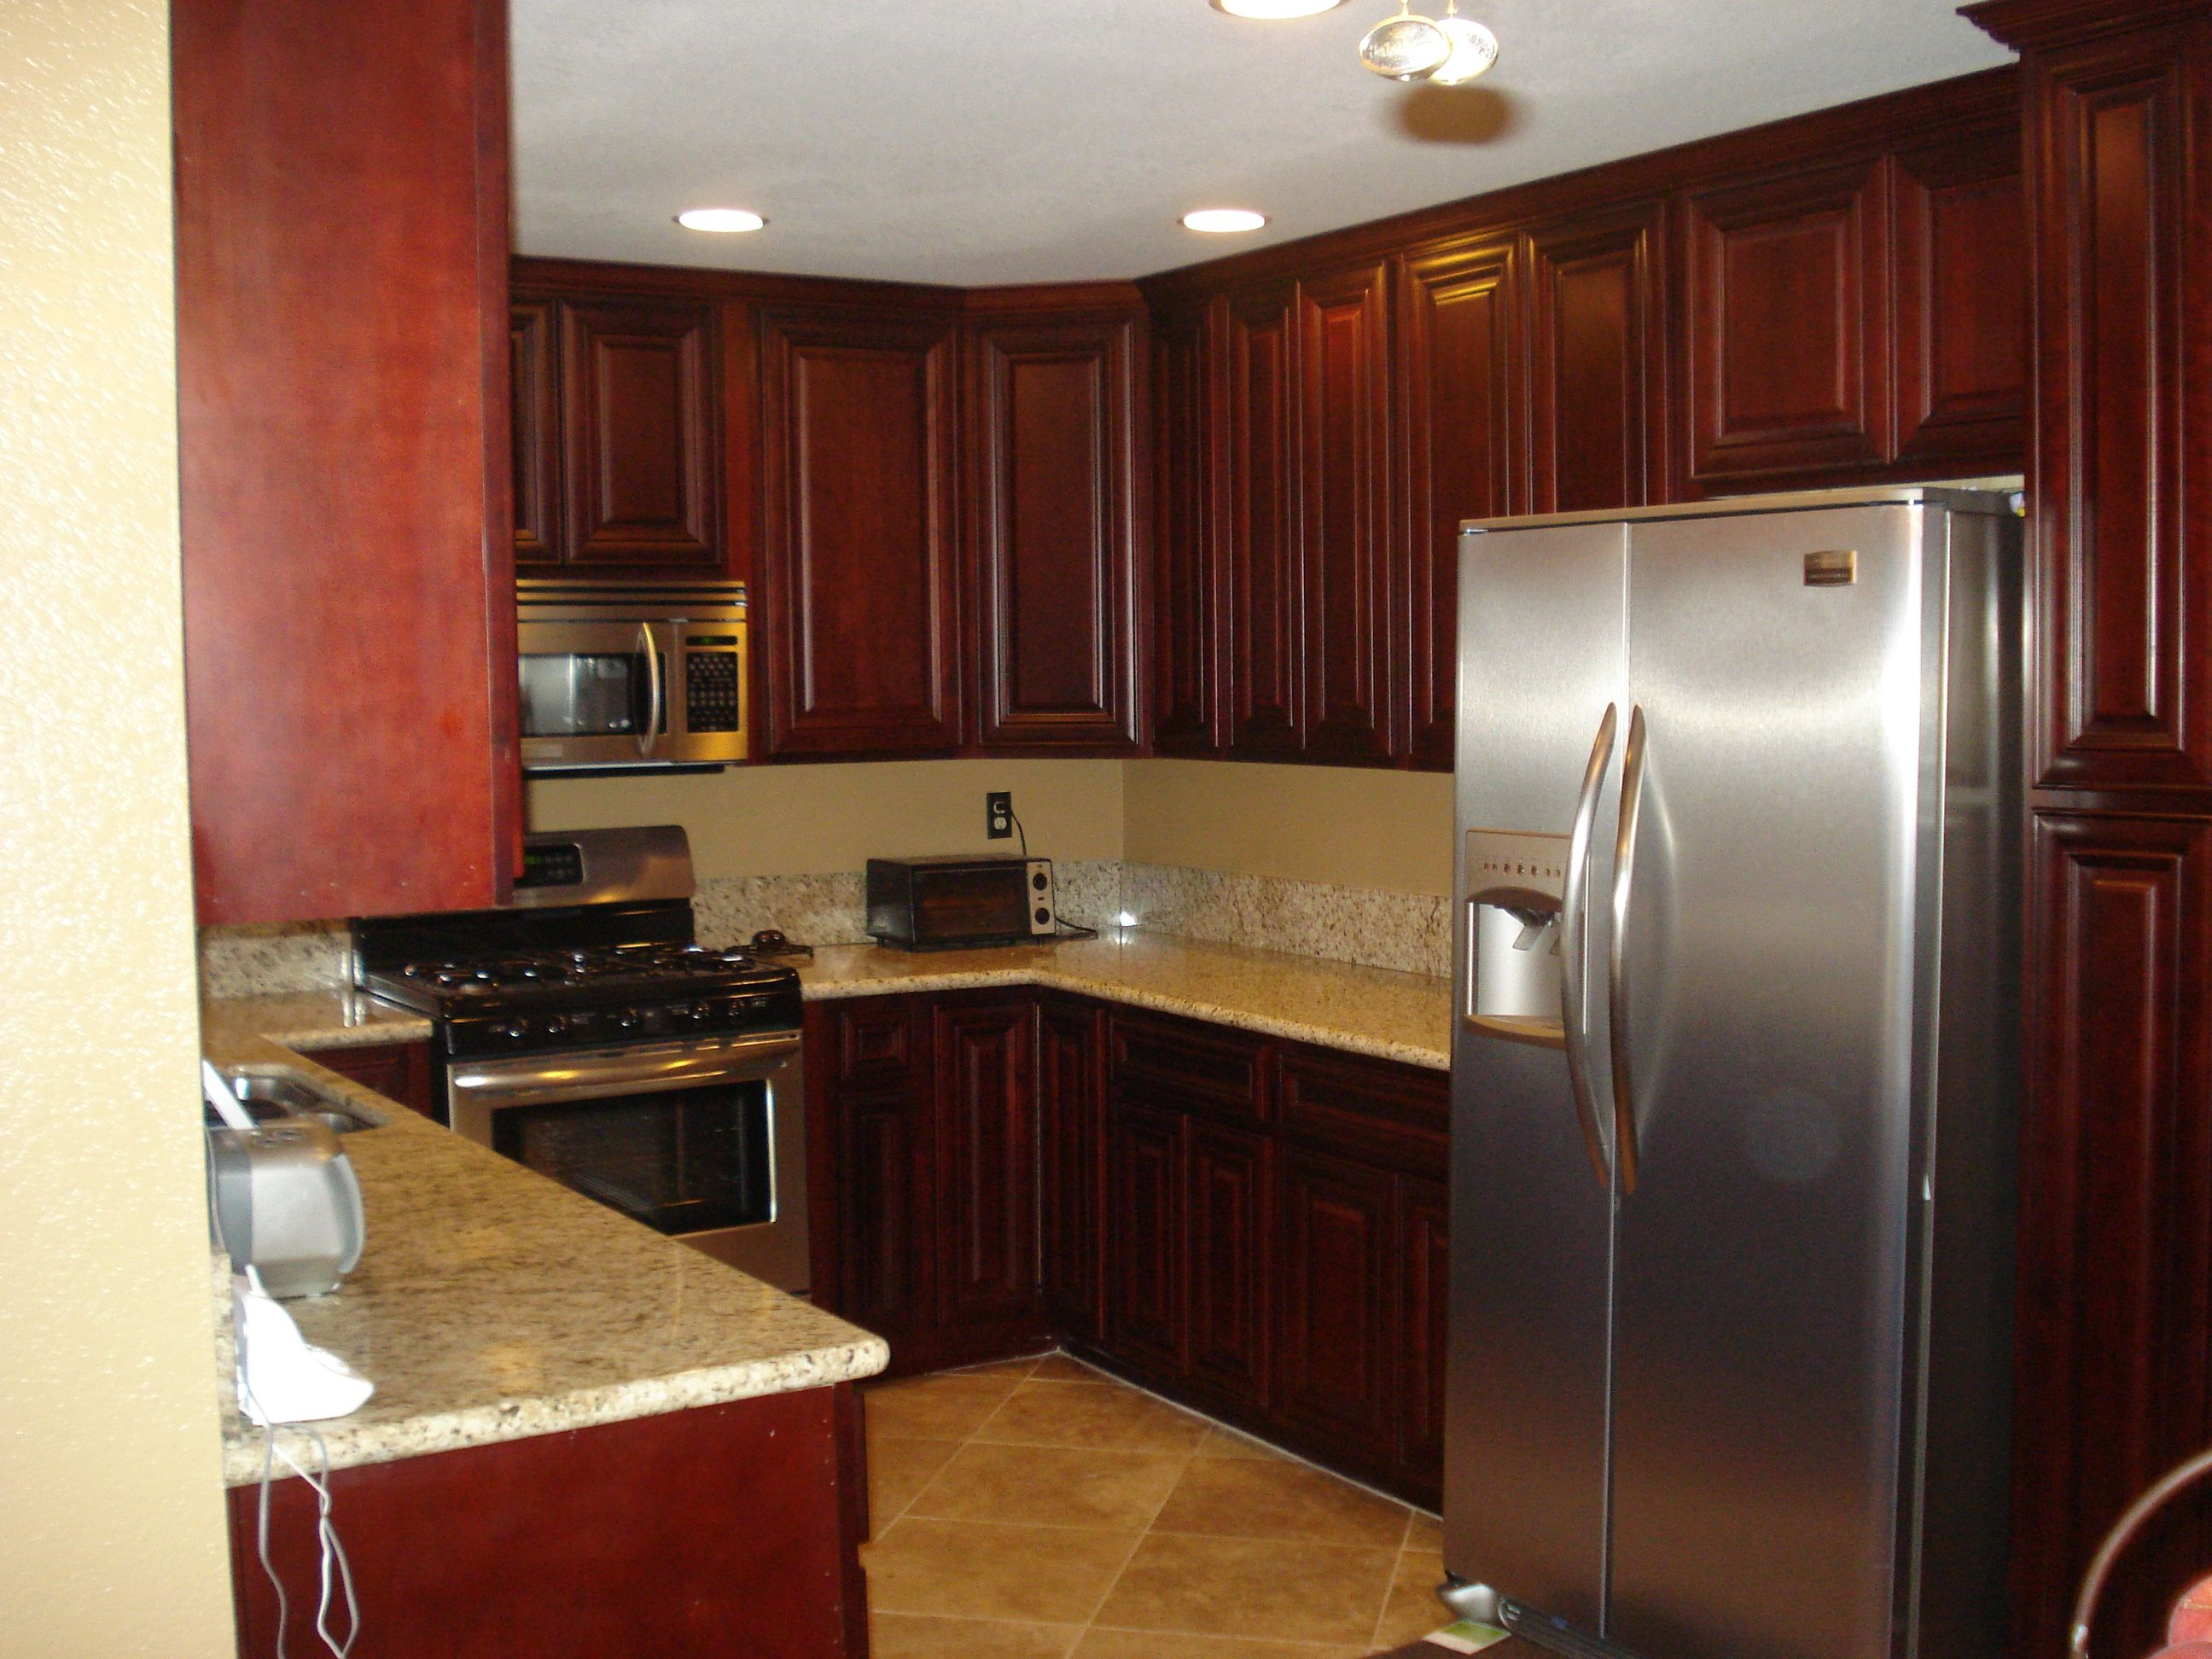 Magnificent White Marble Countertops In U Shaped Kitchen Cherry Red Veneer Cabinets As Inspiring Guest